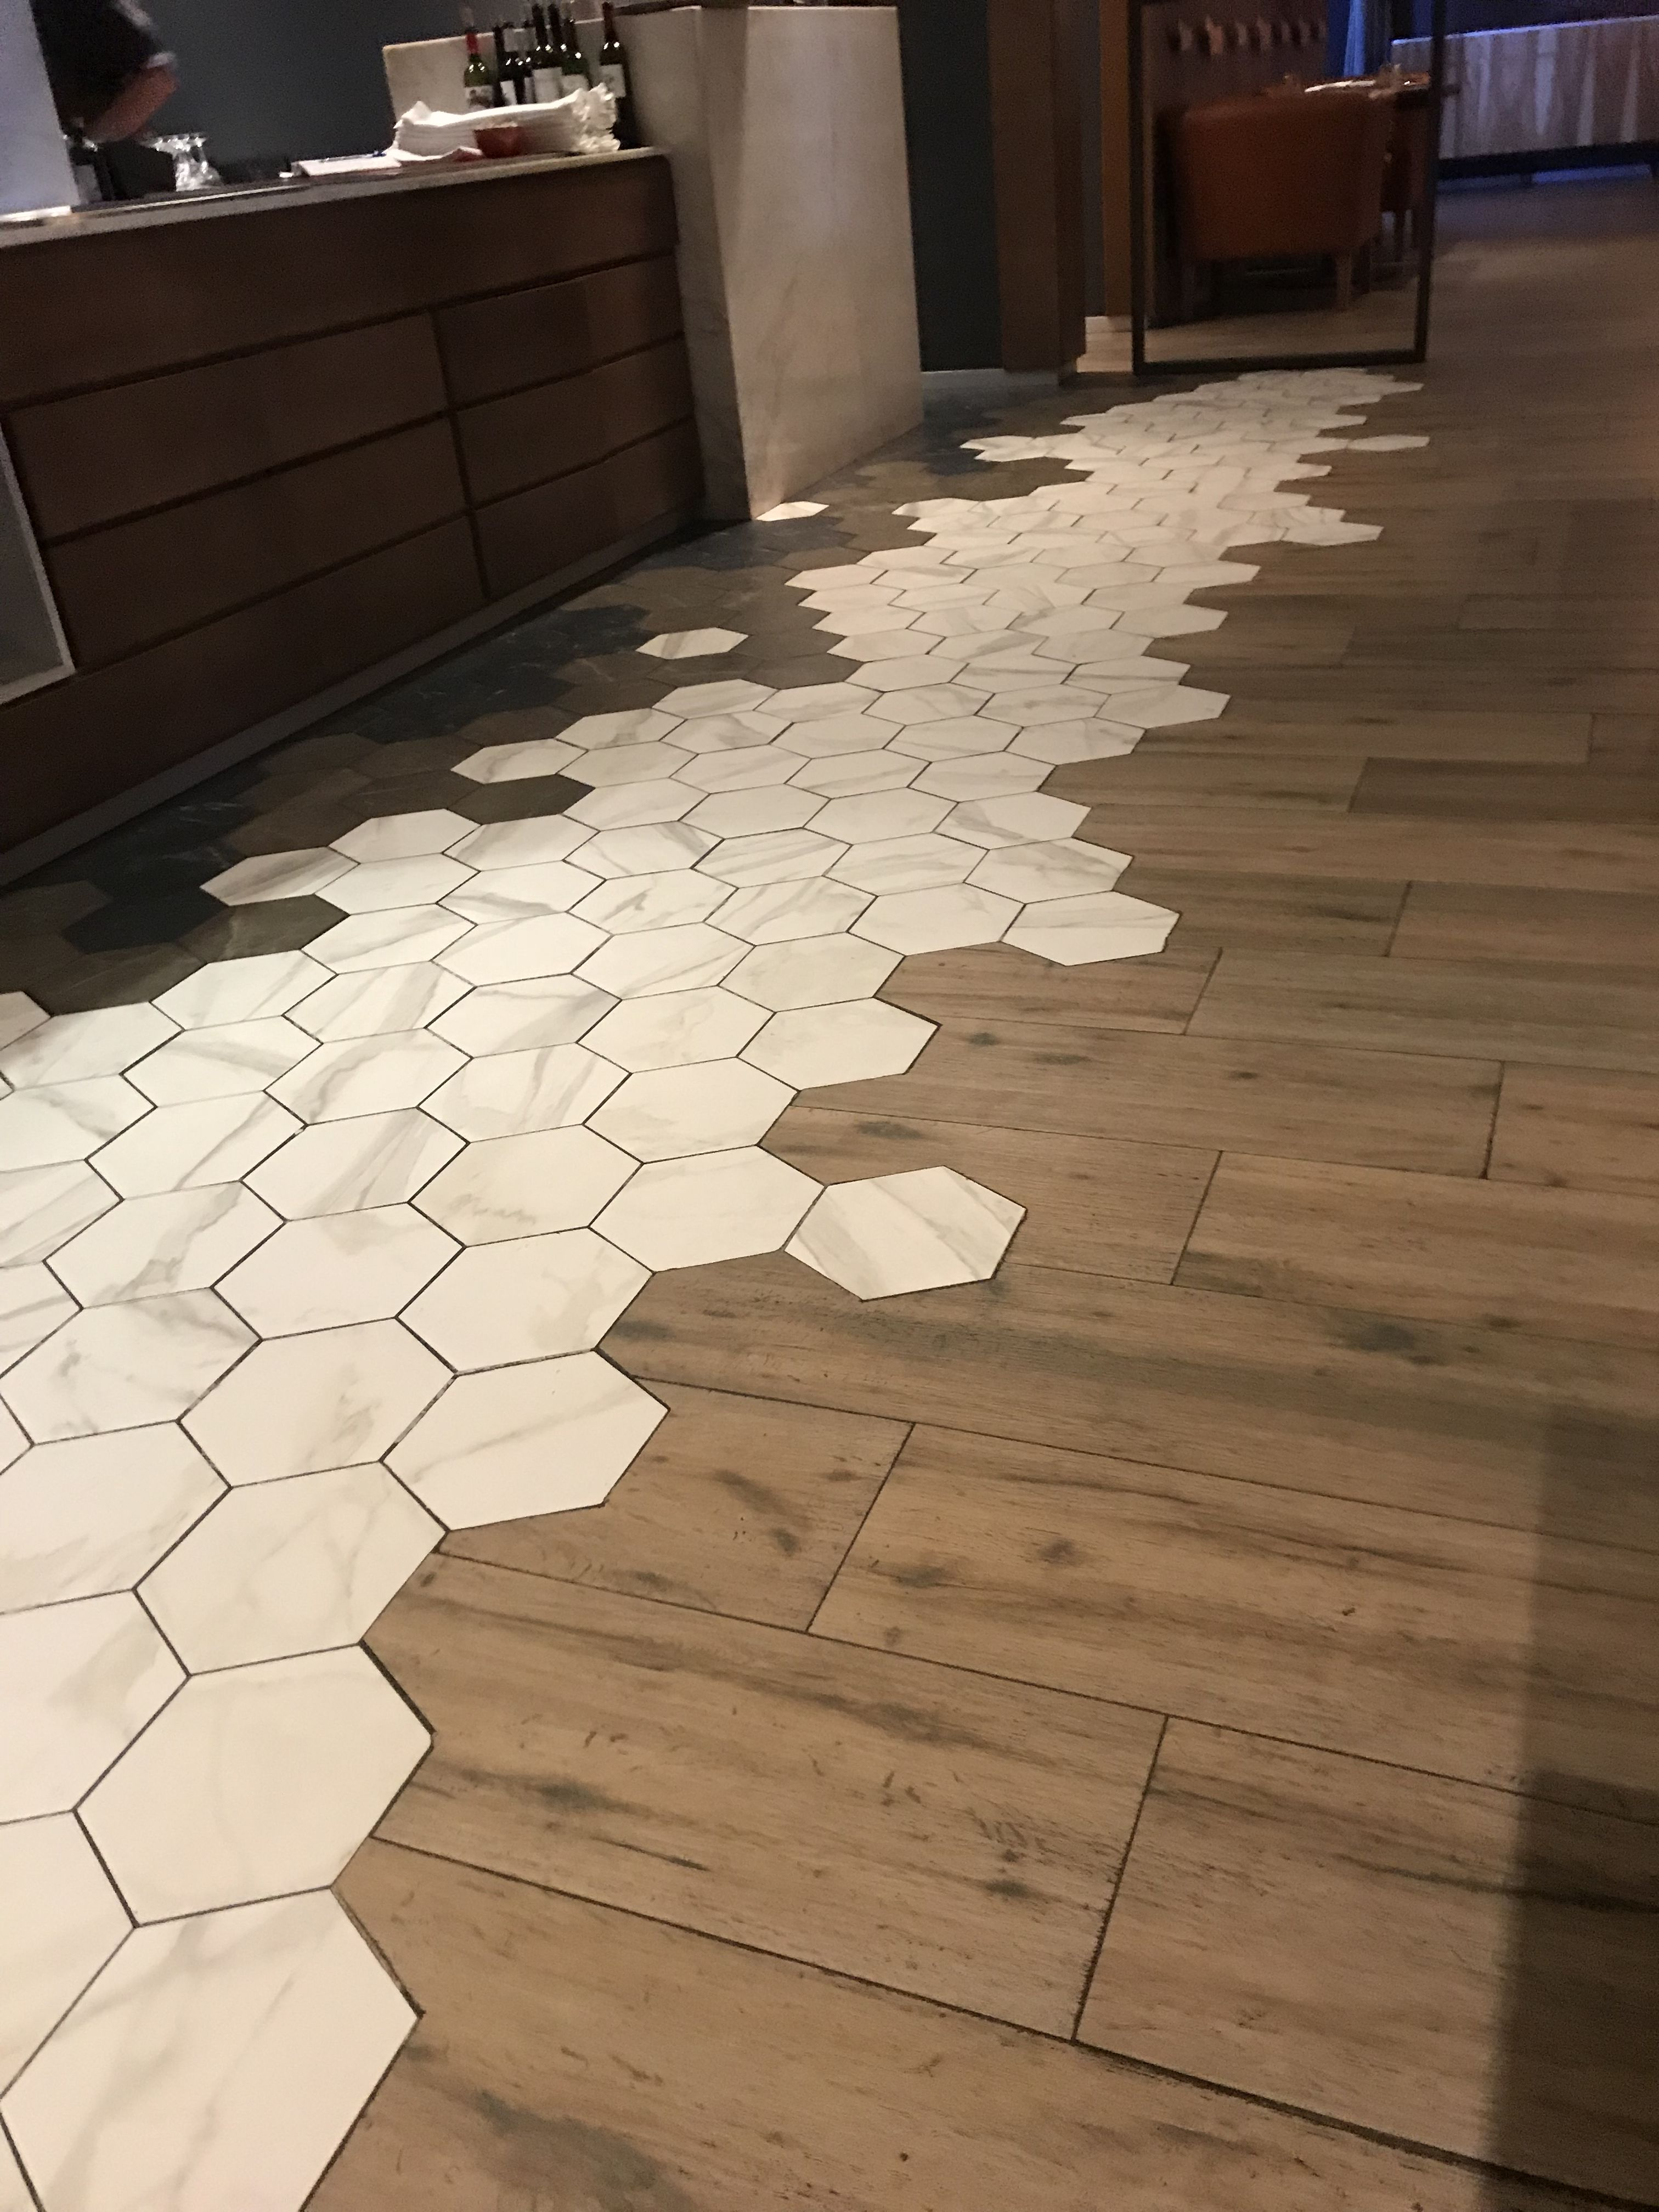 Wood Tile Flooring Wood Tile Floors Flooring Inspiration House Flooring